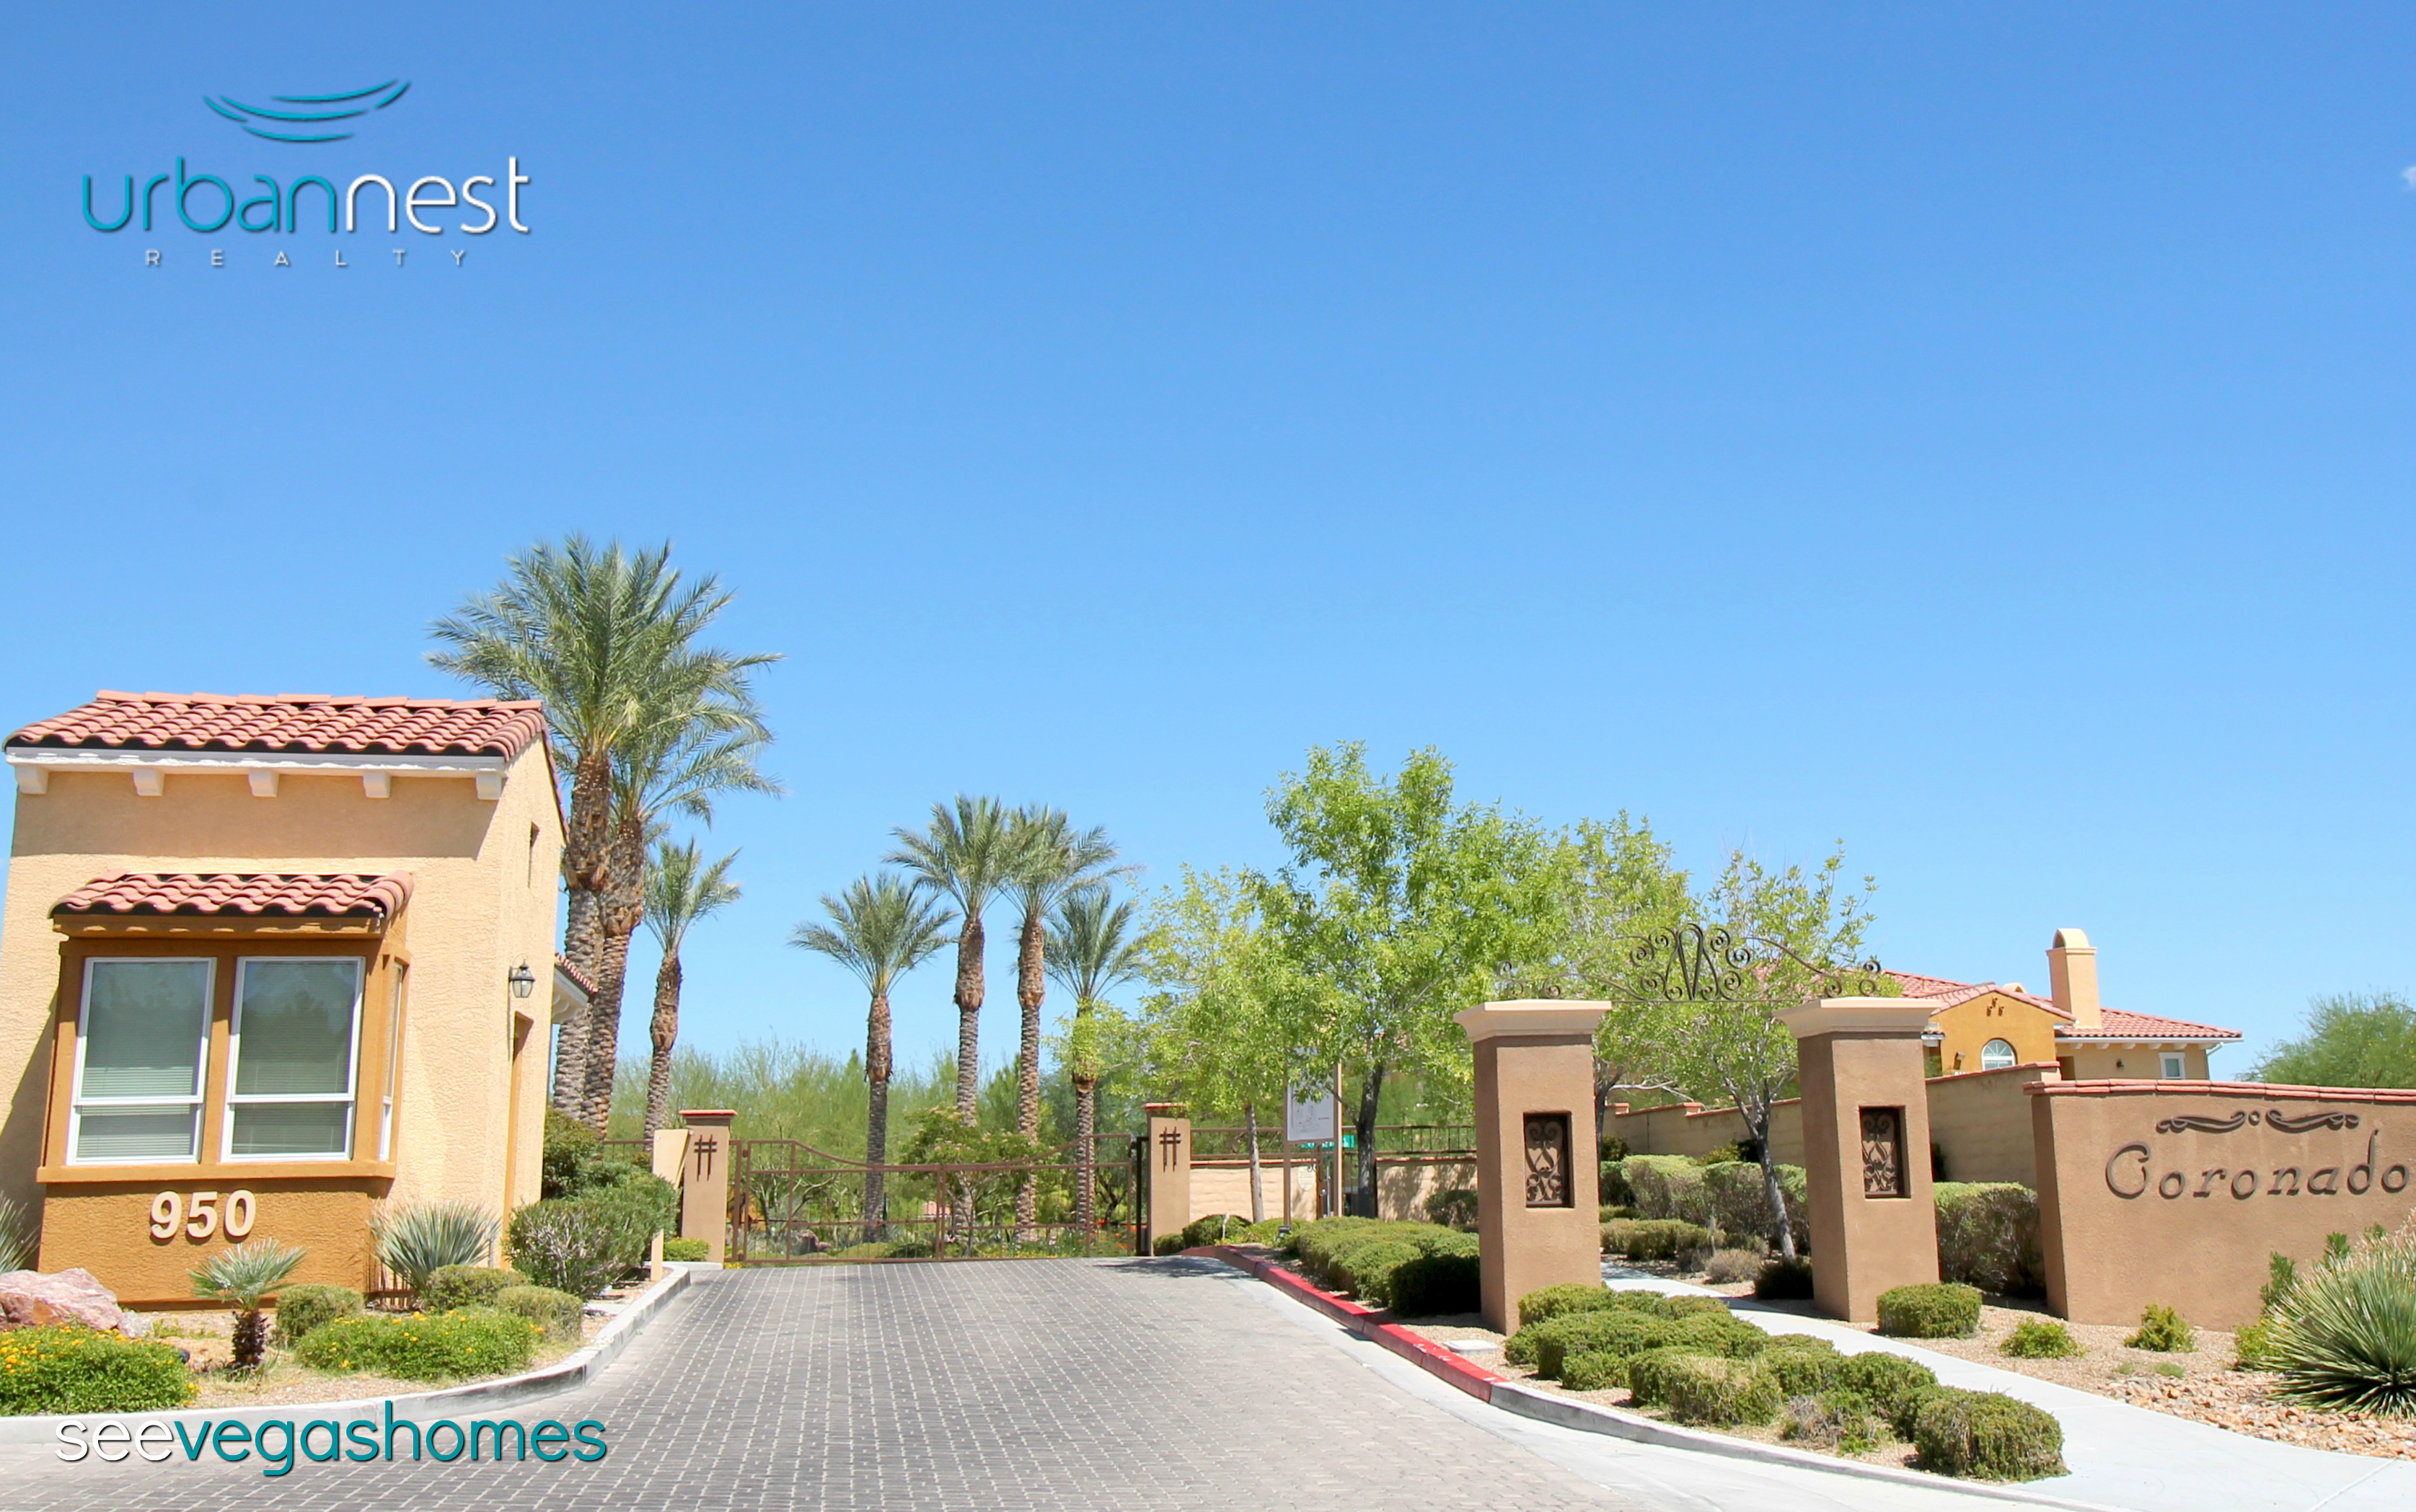 Coronado Condos at Paseos in Summerlin Las Vegas NV 89138 SeeVegasHomes